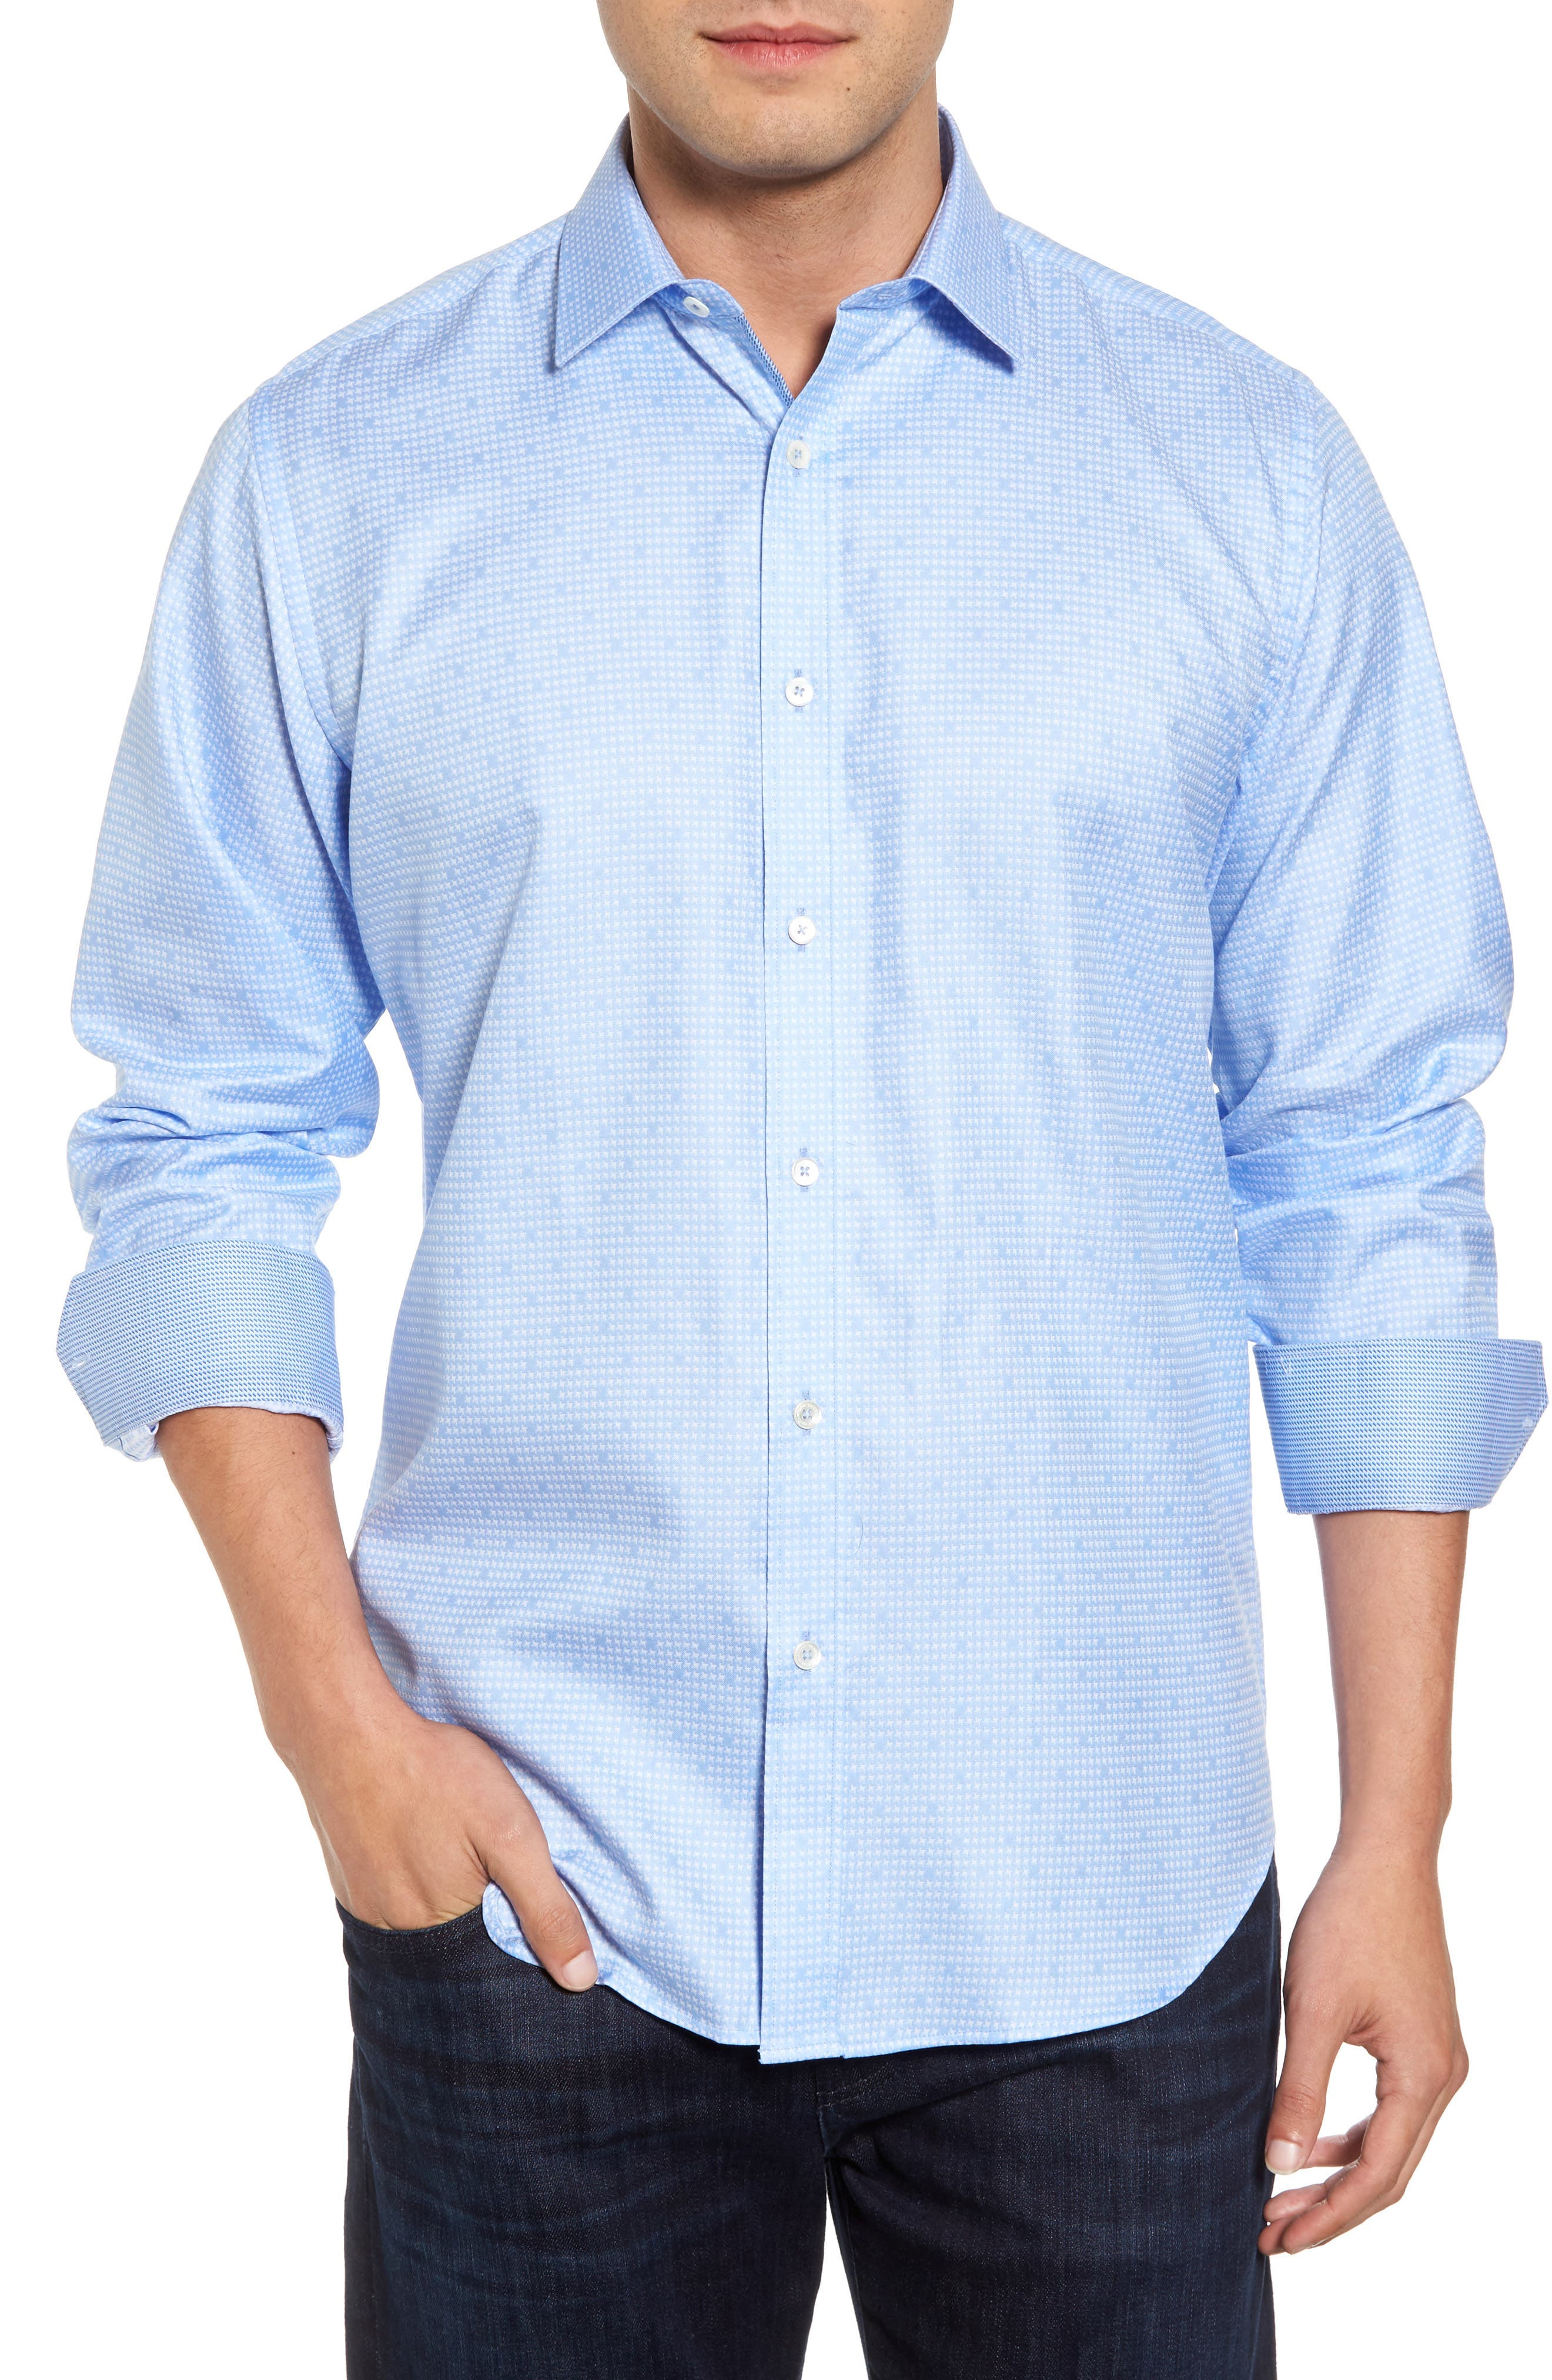 Classic Fit Houndstooth Sport Shirt,                             Main thumbnail 1, color,                             459